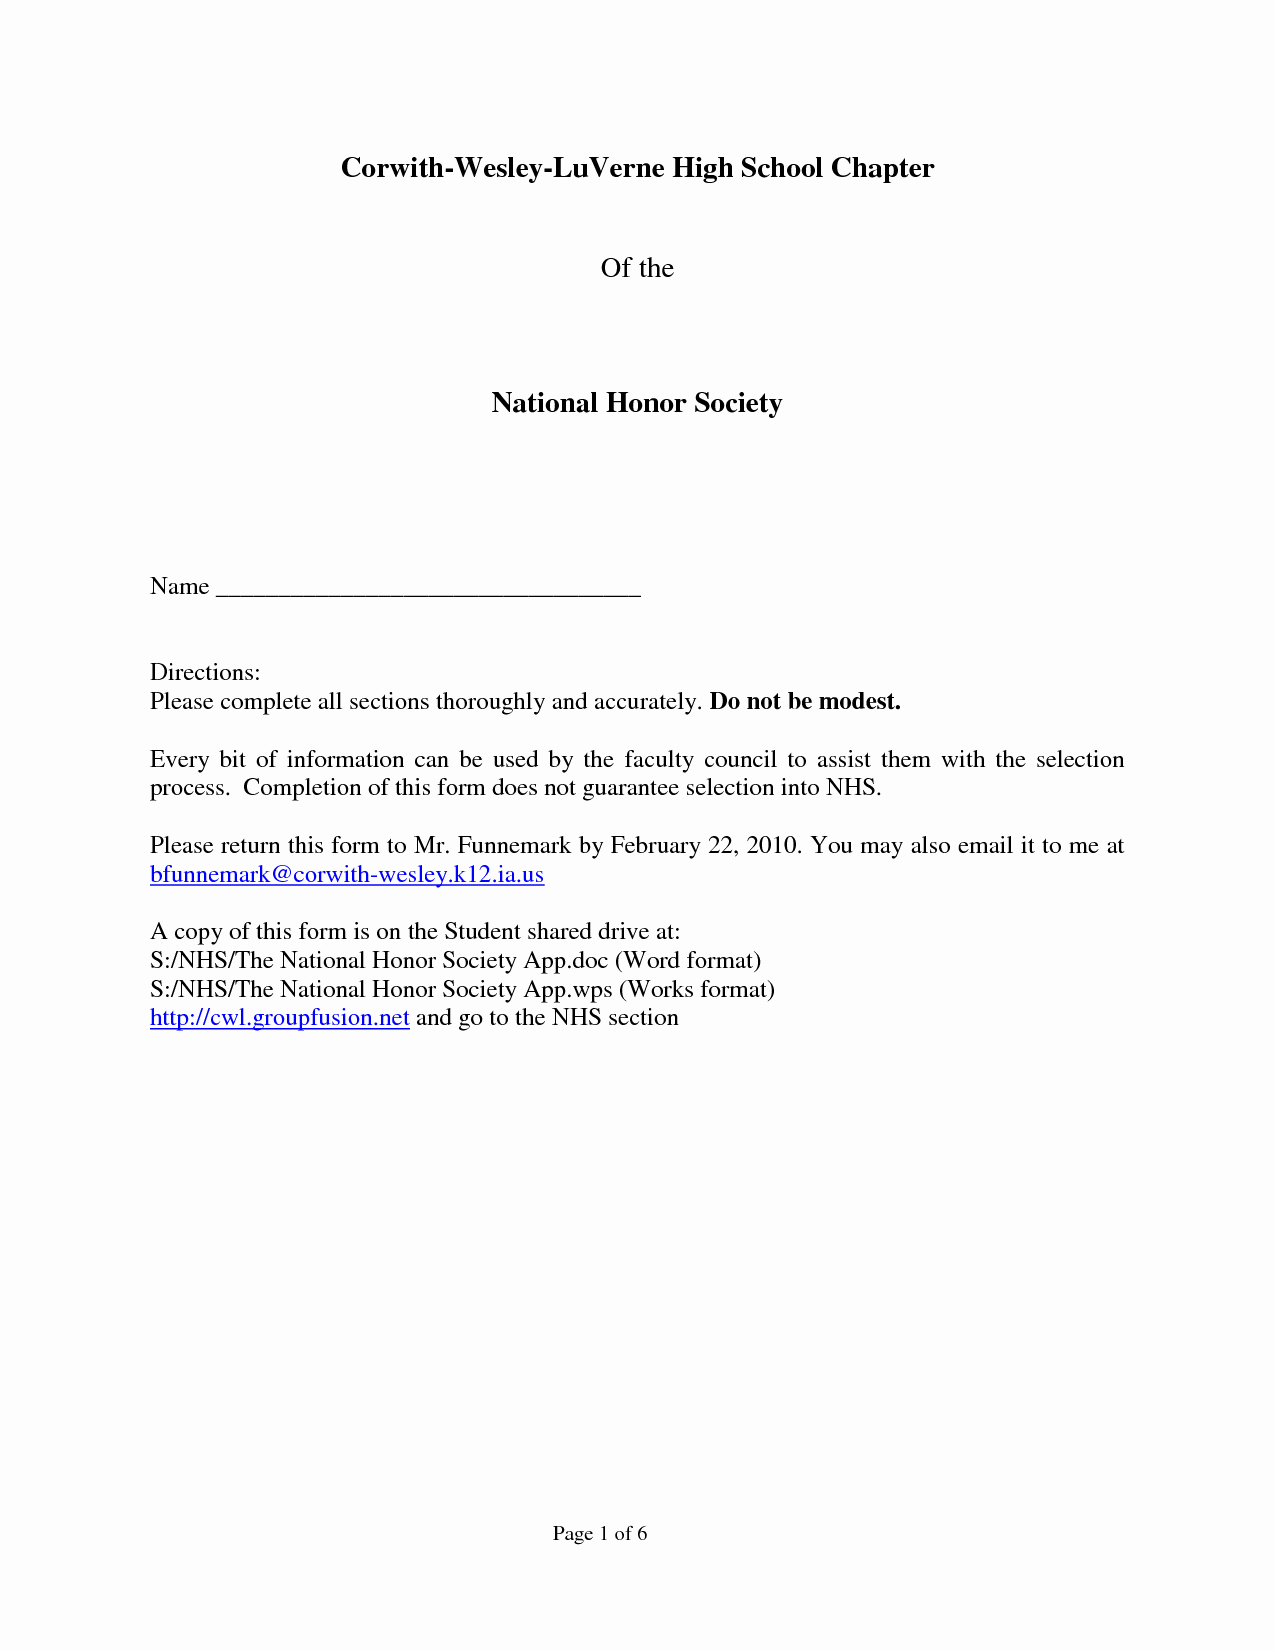 National Honor society Resume Beautiful Sample Re Mendation Letter for National Honor society